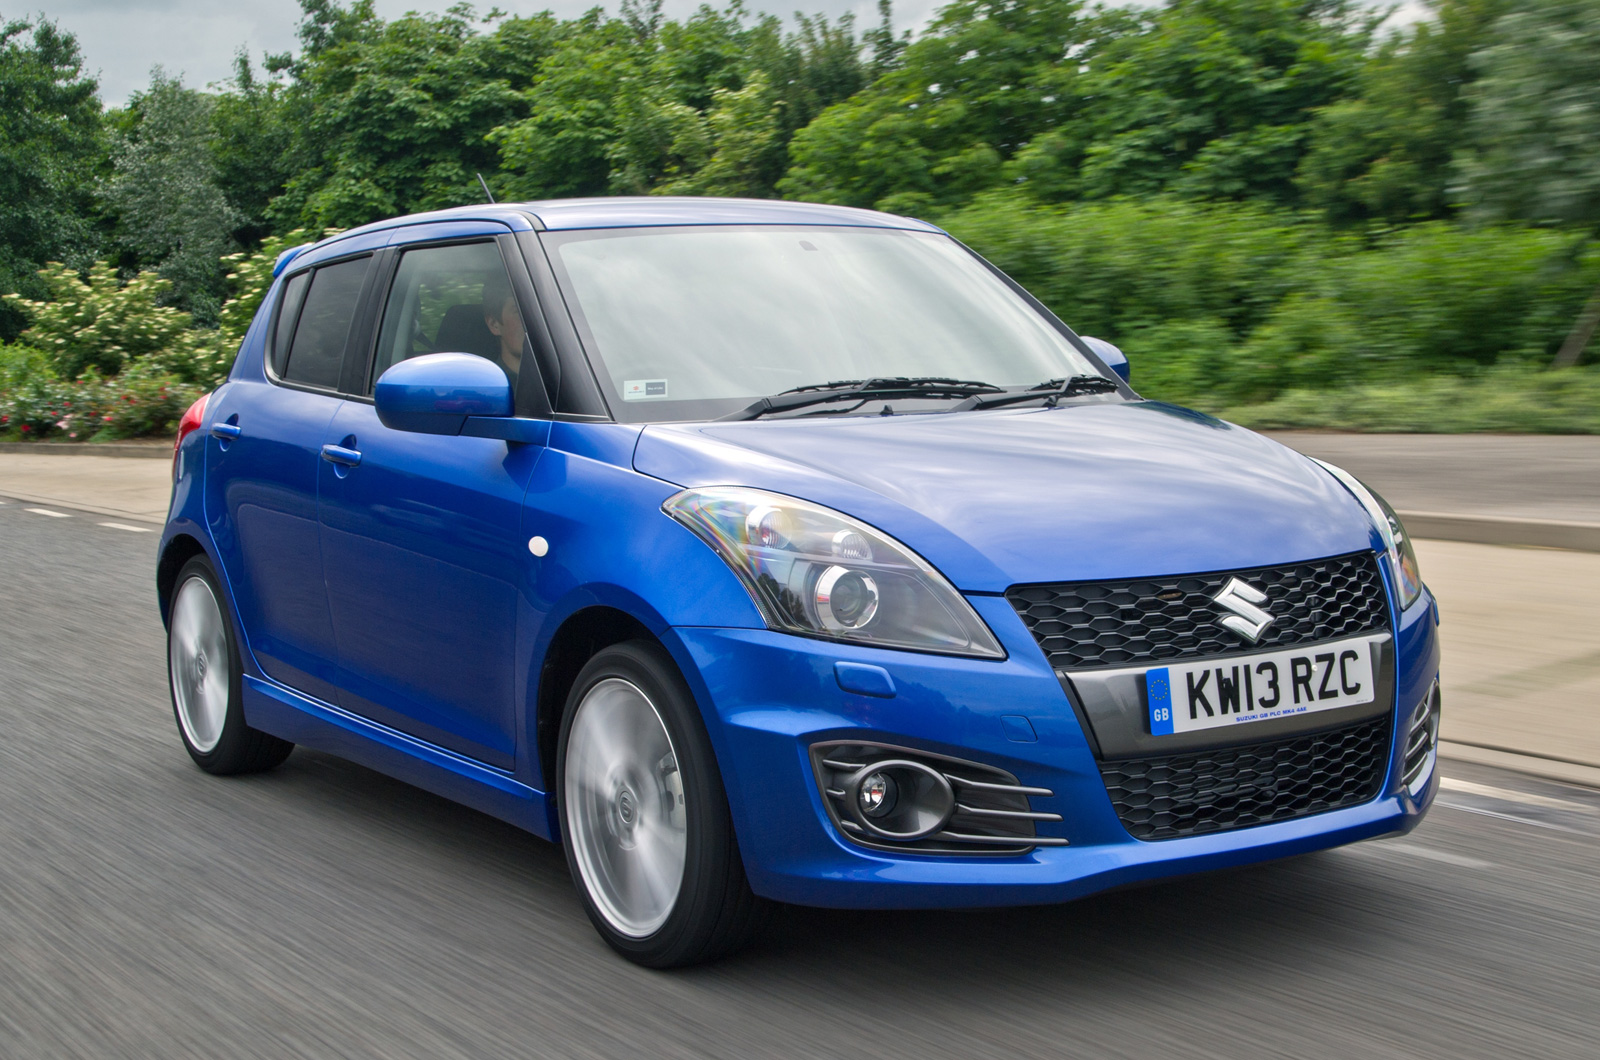 facelifted suzuki swift 4x4 revealed. Black Bedroom Furniture Sets. Home Design Ideas